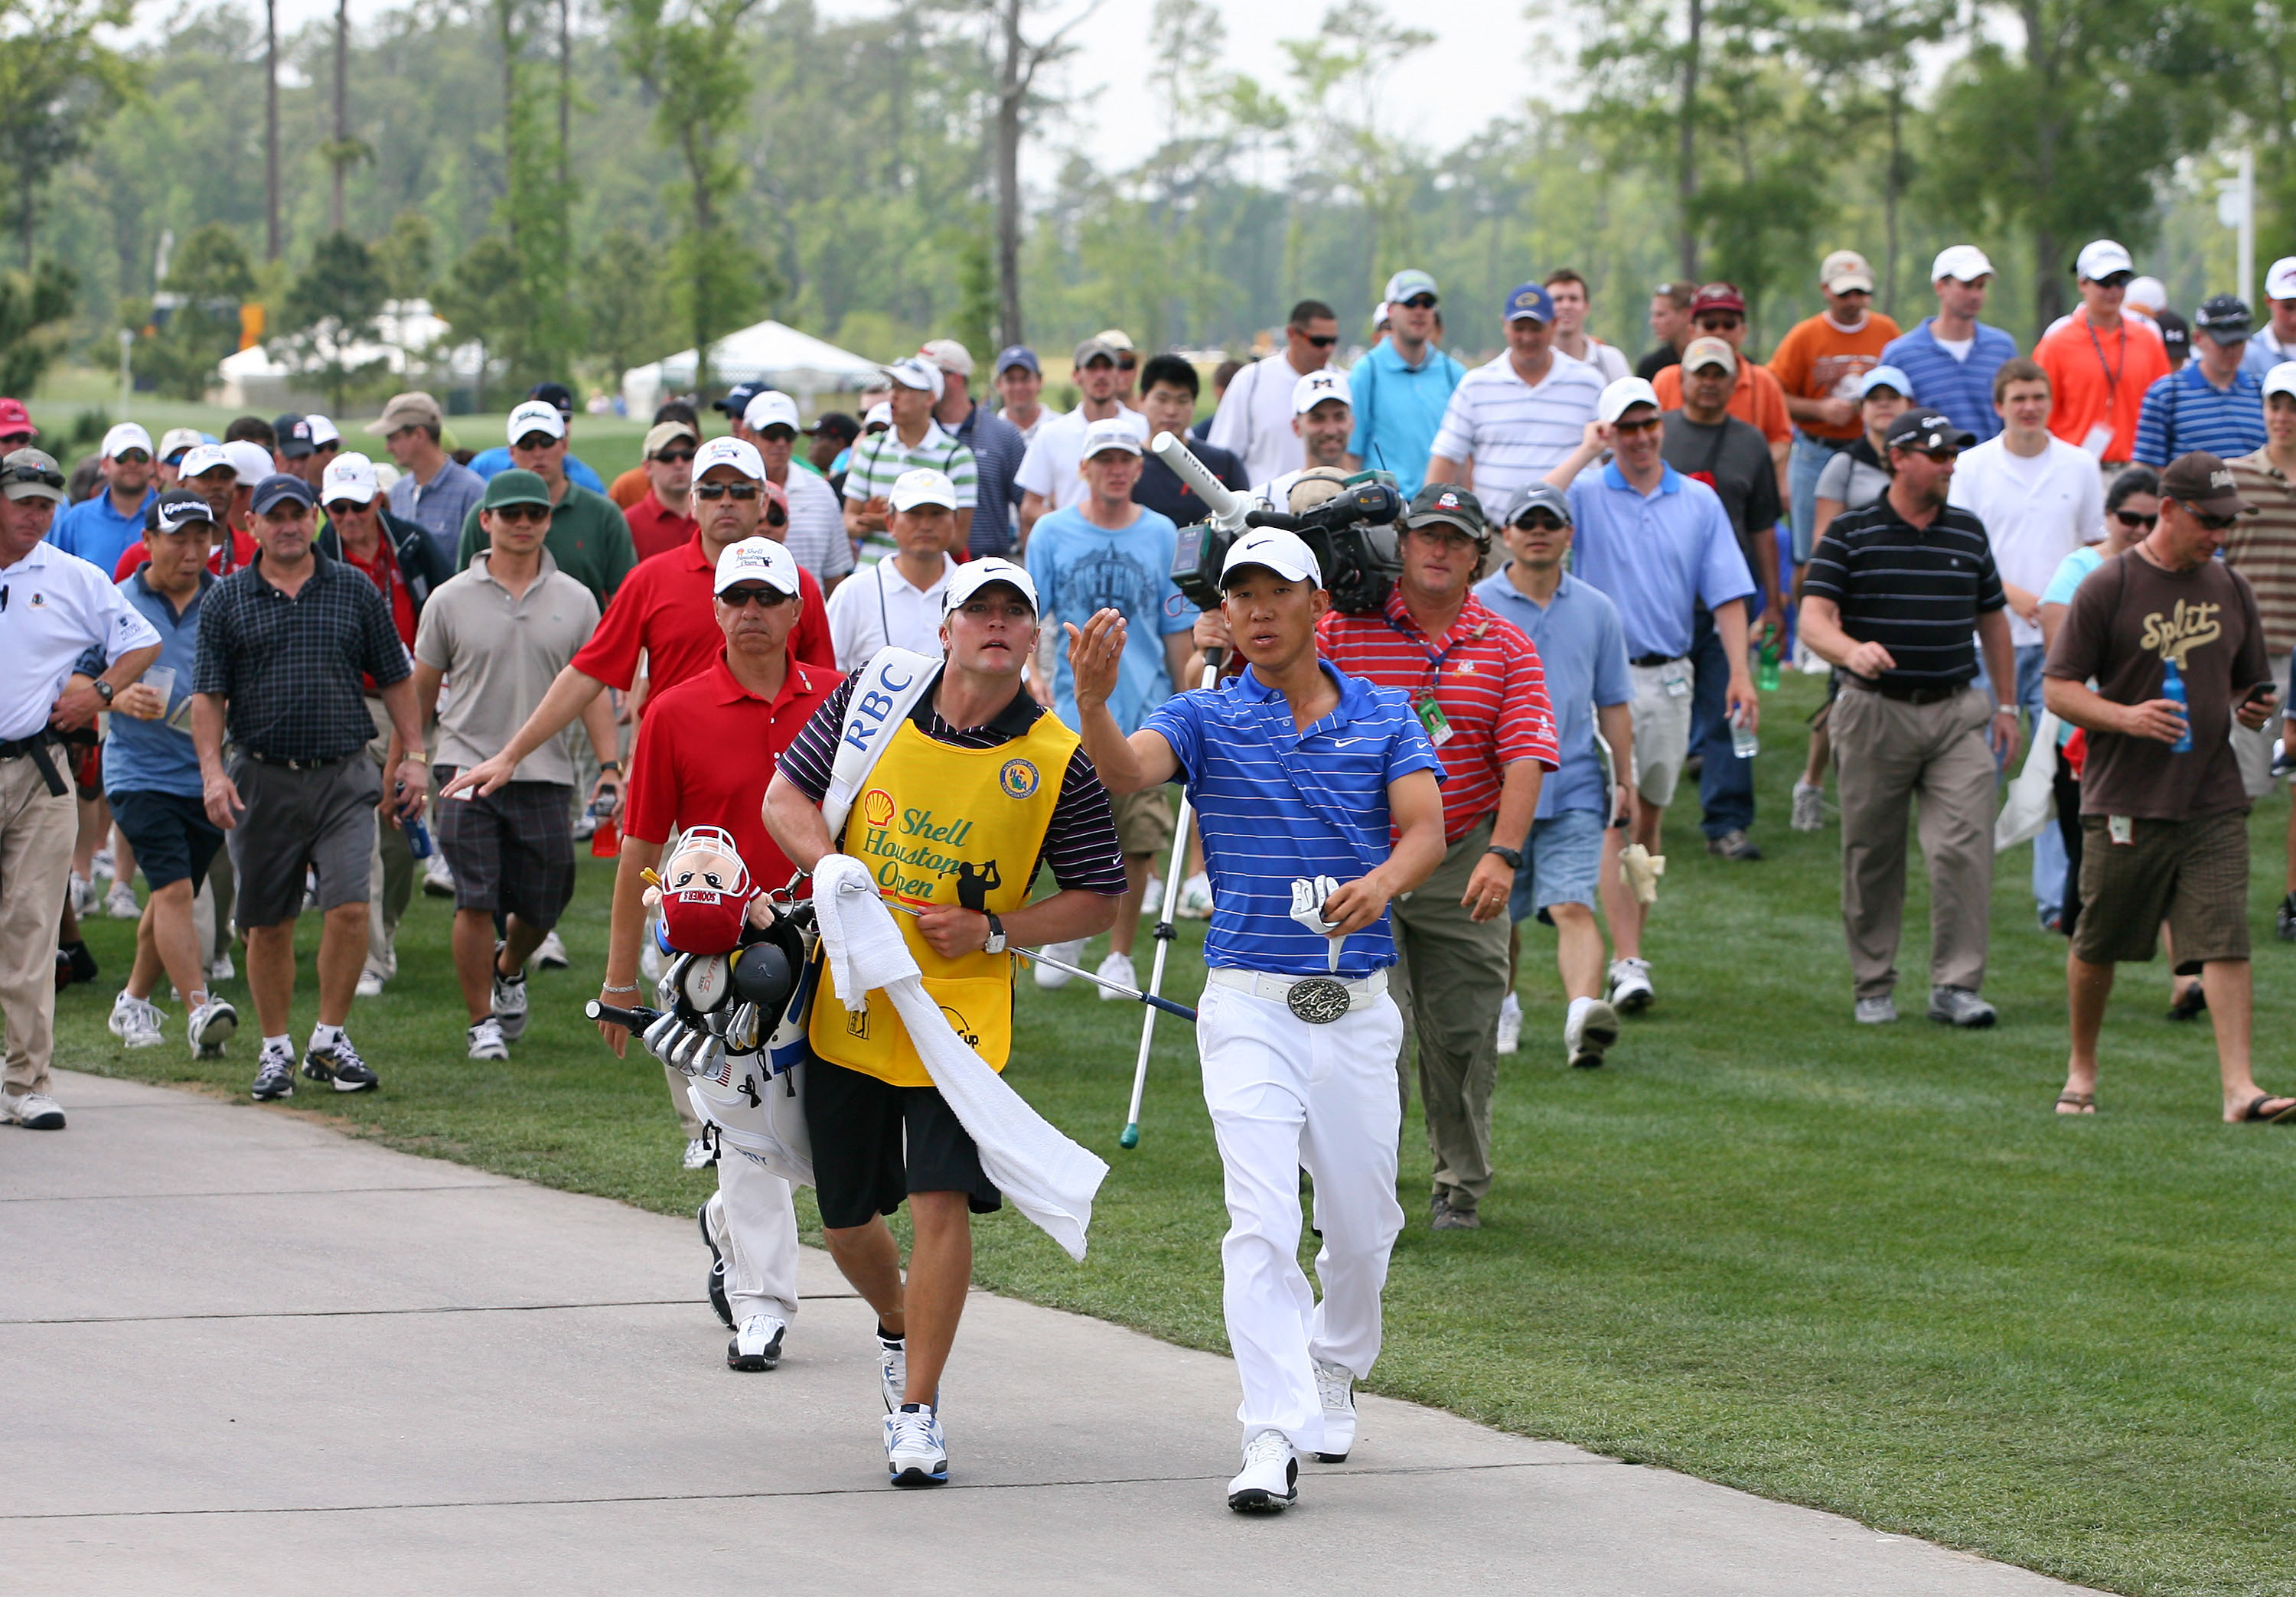 10. 2010: Anthony Kim's last stand